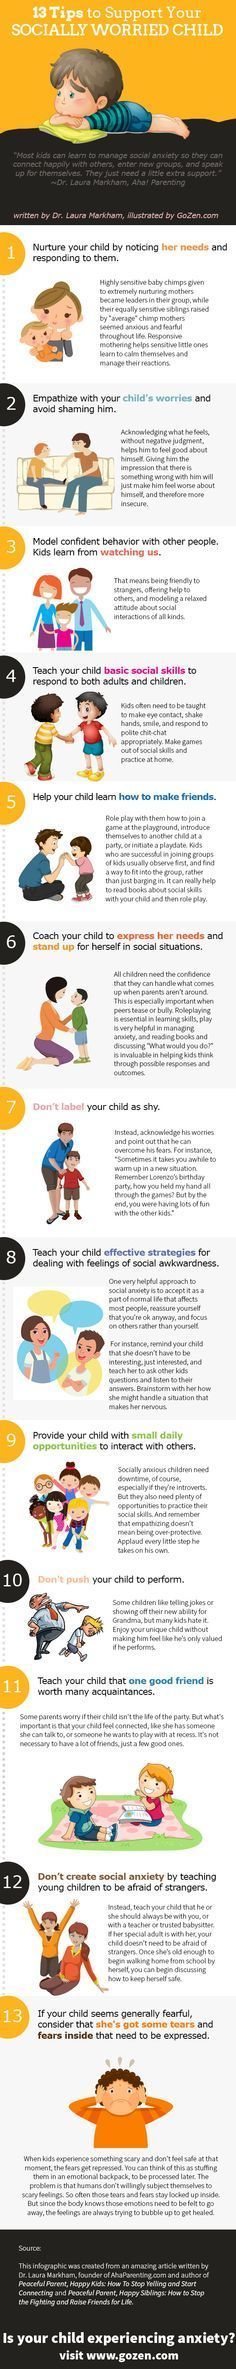 Shy child? 13 Tips to Help